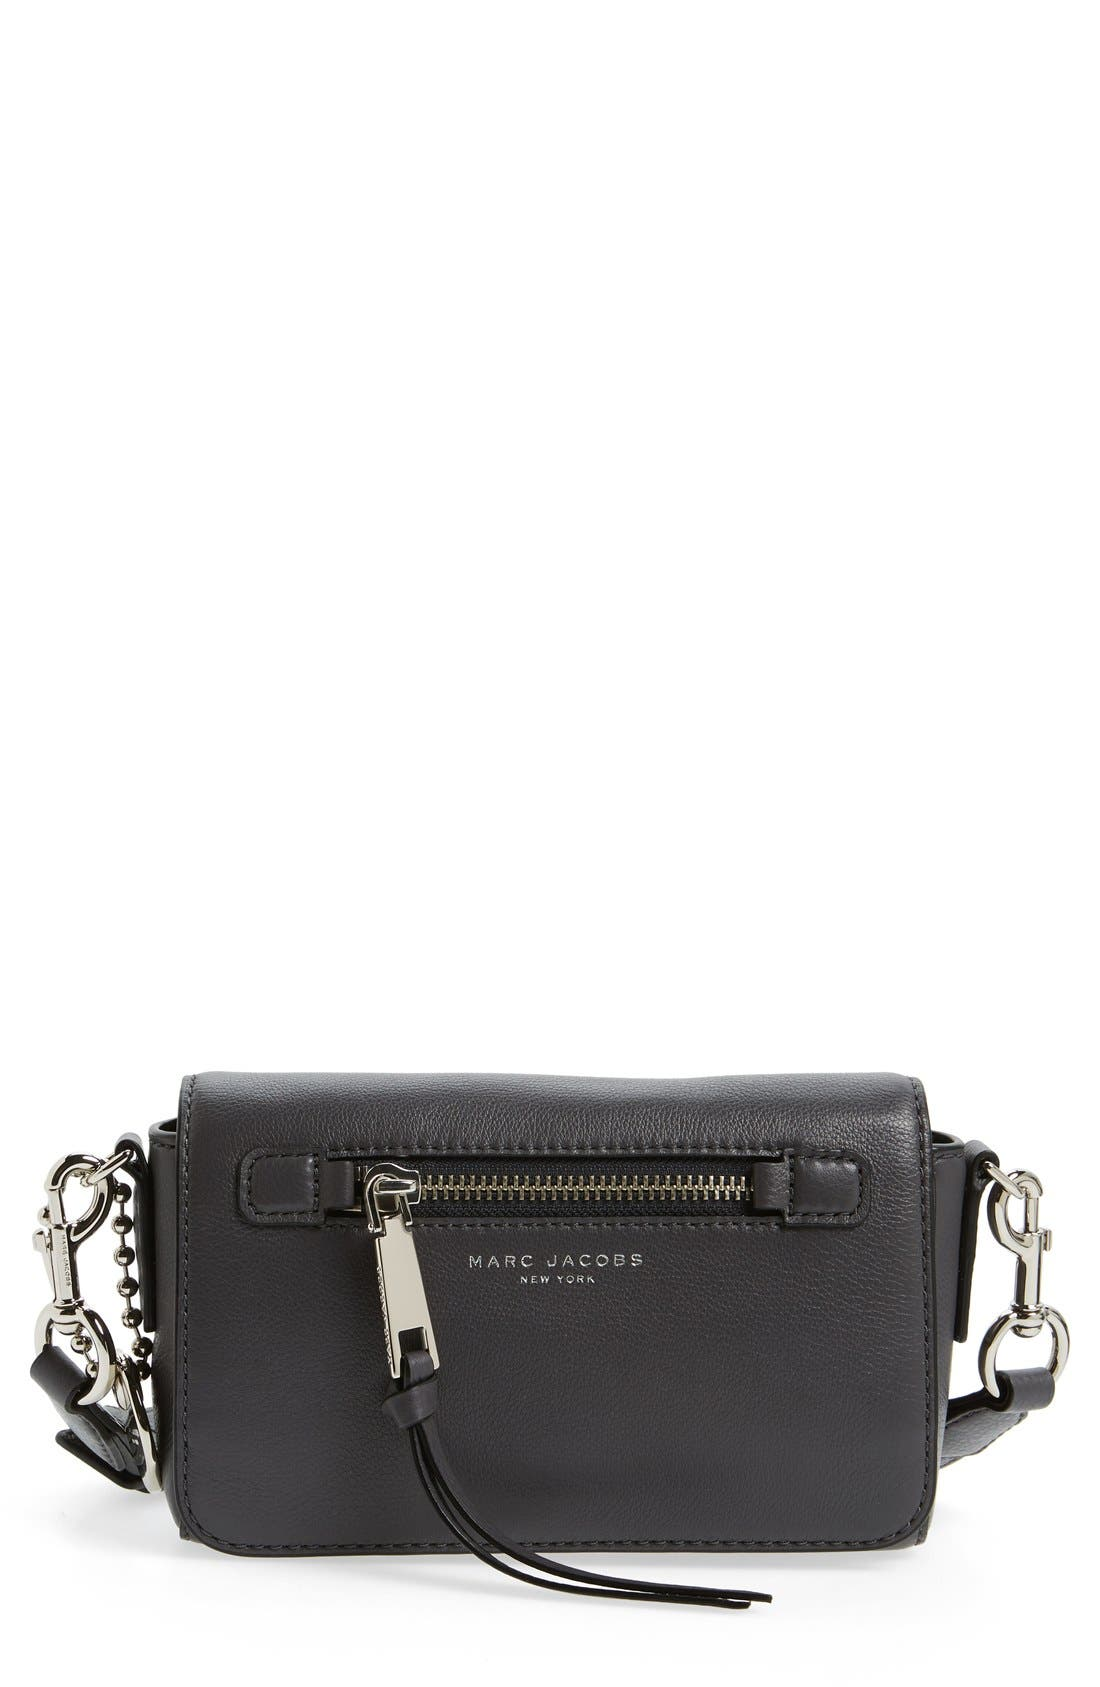 MARC JACOBS 'Recruit' Leather Crossbody Bag